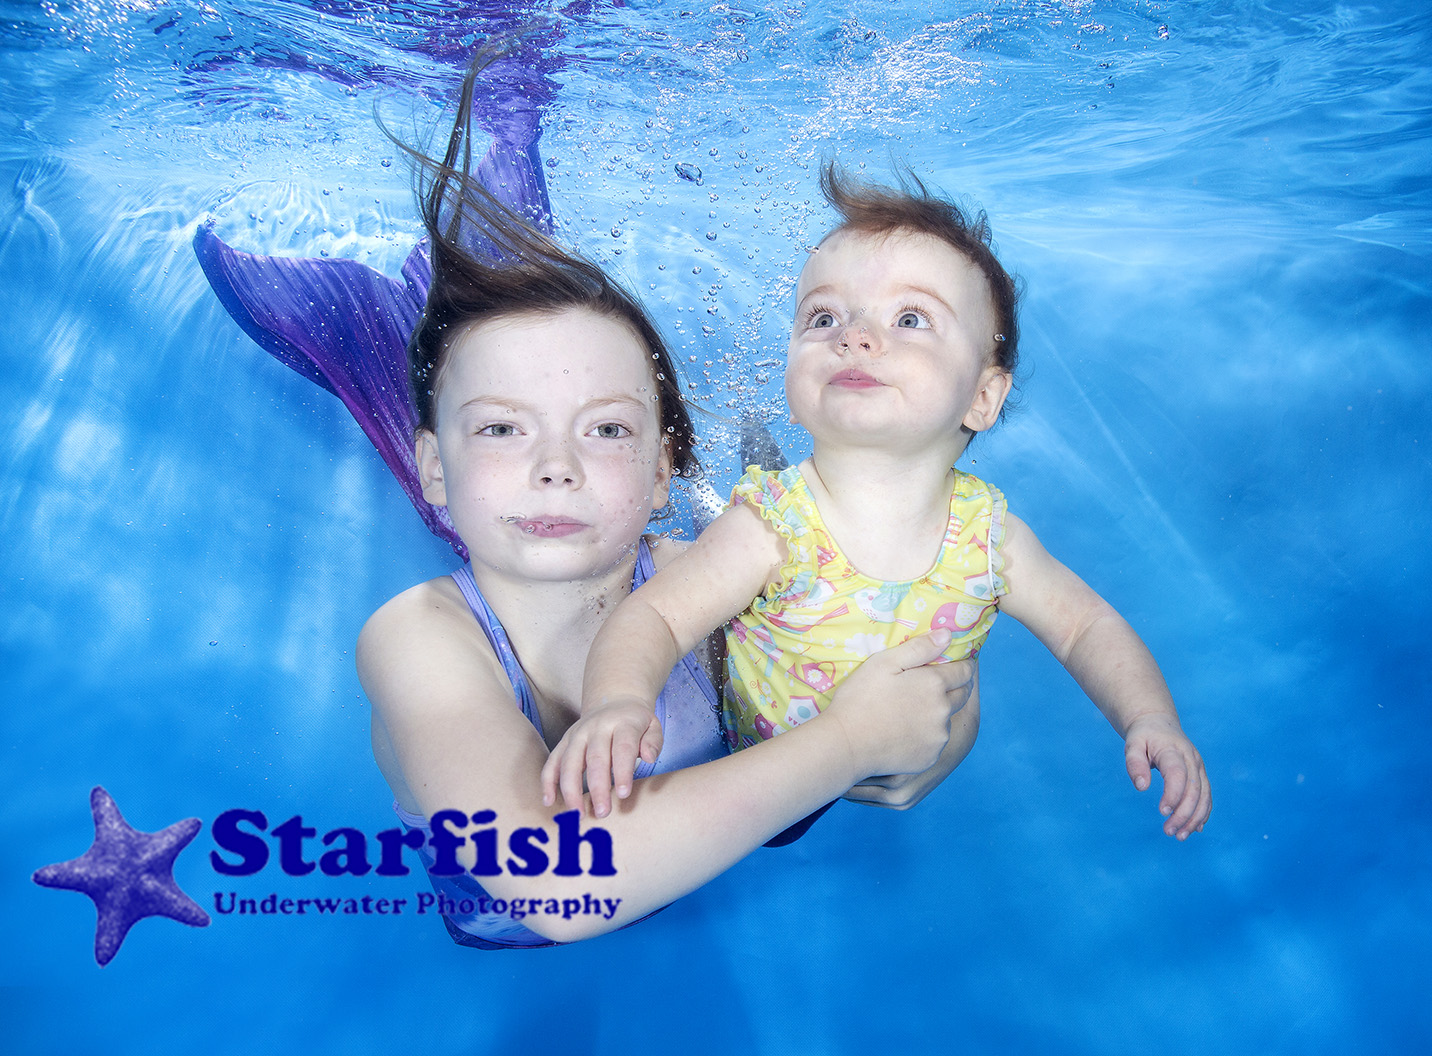 Michelle t GUST - Starfish were amazing when taking underwater shots of my two girls aged 7 years and 10 months. So patient and helpful with them both especiallyMy eldest who struggled without her goggles. The pictures are fantastic and everyone we have shown them to have been totally amazed at them. Would definitely recommend starfish to Anyone wanting special photos of children. Massive thanksMichelle Smith